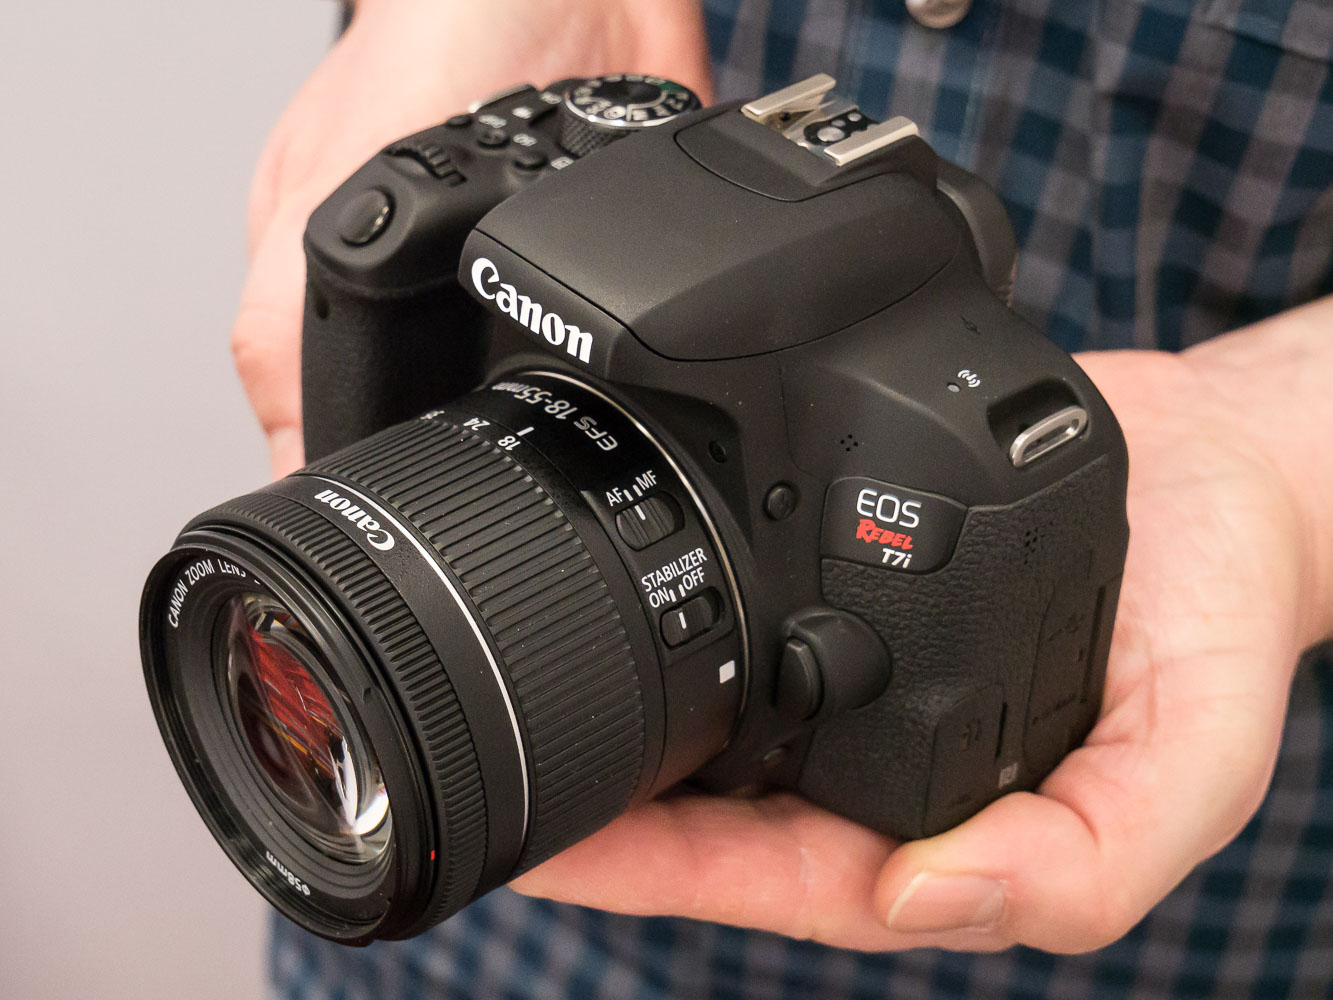 Hands-on with the Canon EOS Rebel T7i / EOS 800D: Digital